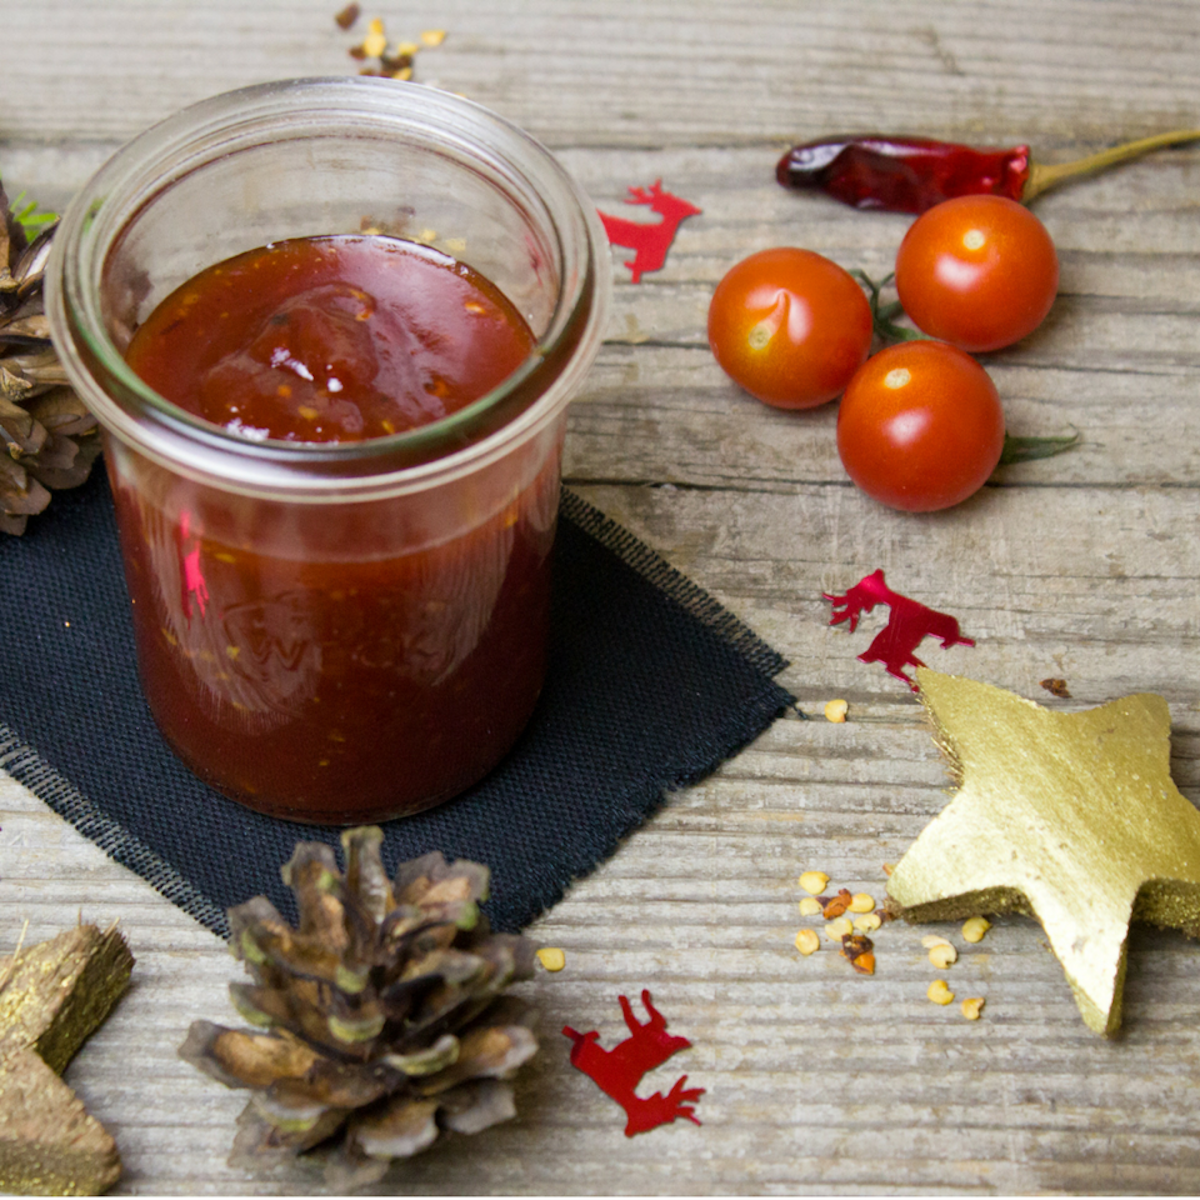 Homemade Dipping Sauces (Paleo, Refined Sugar-Free)